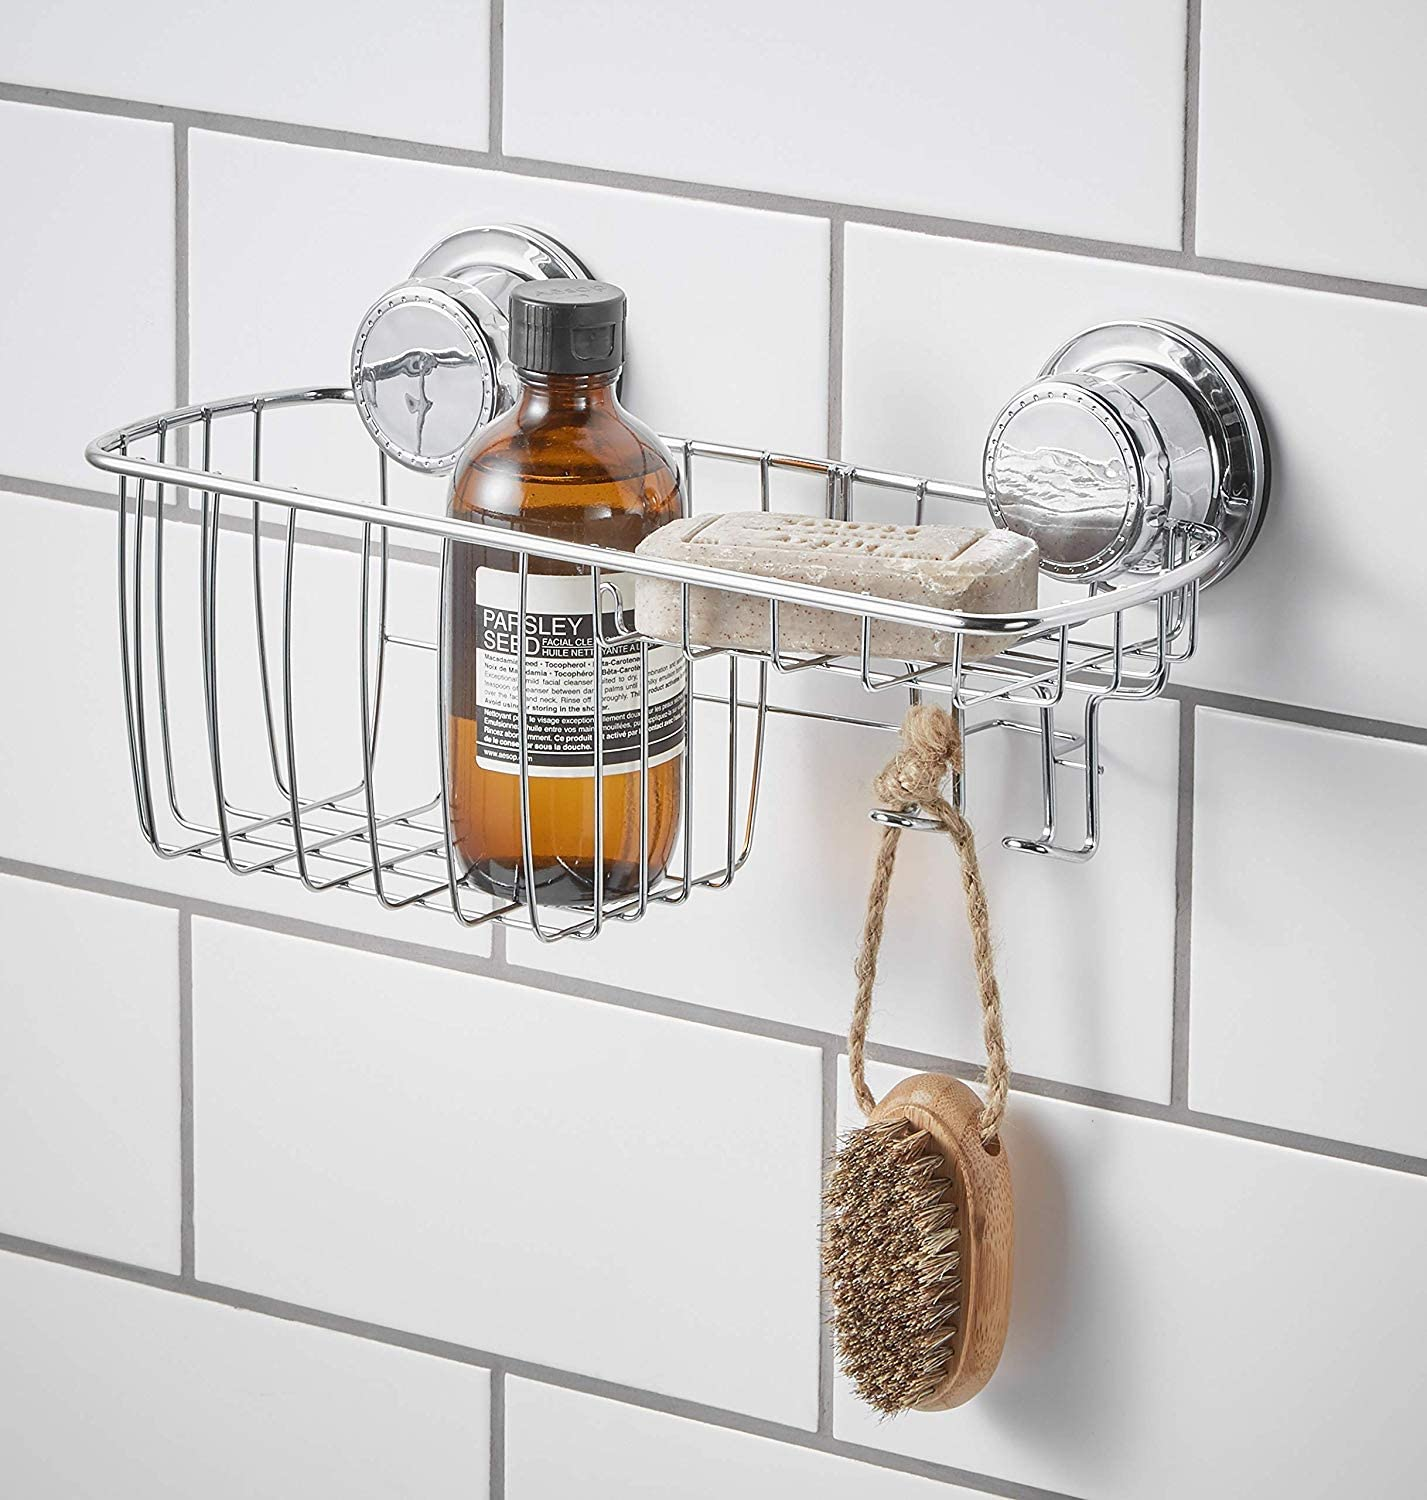 Rust Resistant Vacuum Shelf simplywire Shower Soap Bar and Sponge Holder Extra Strong Suction Soap Dish Chrome